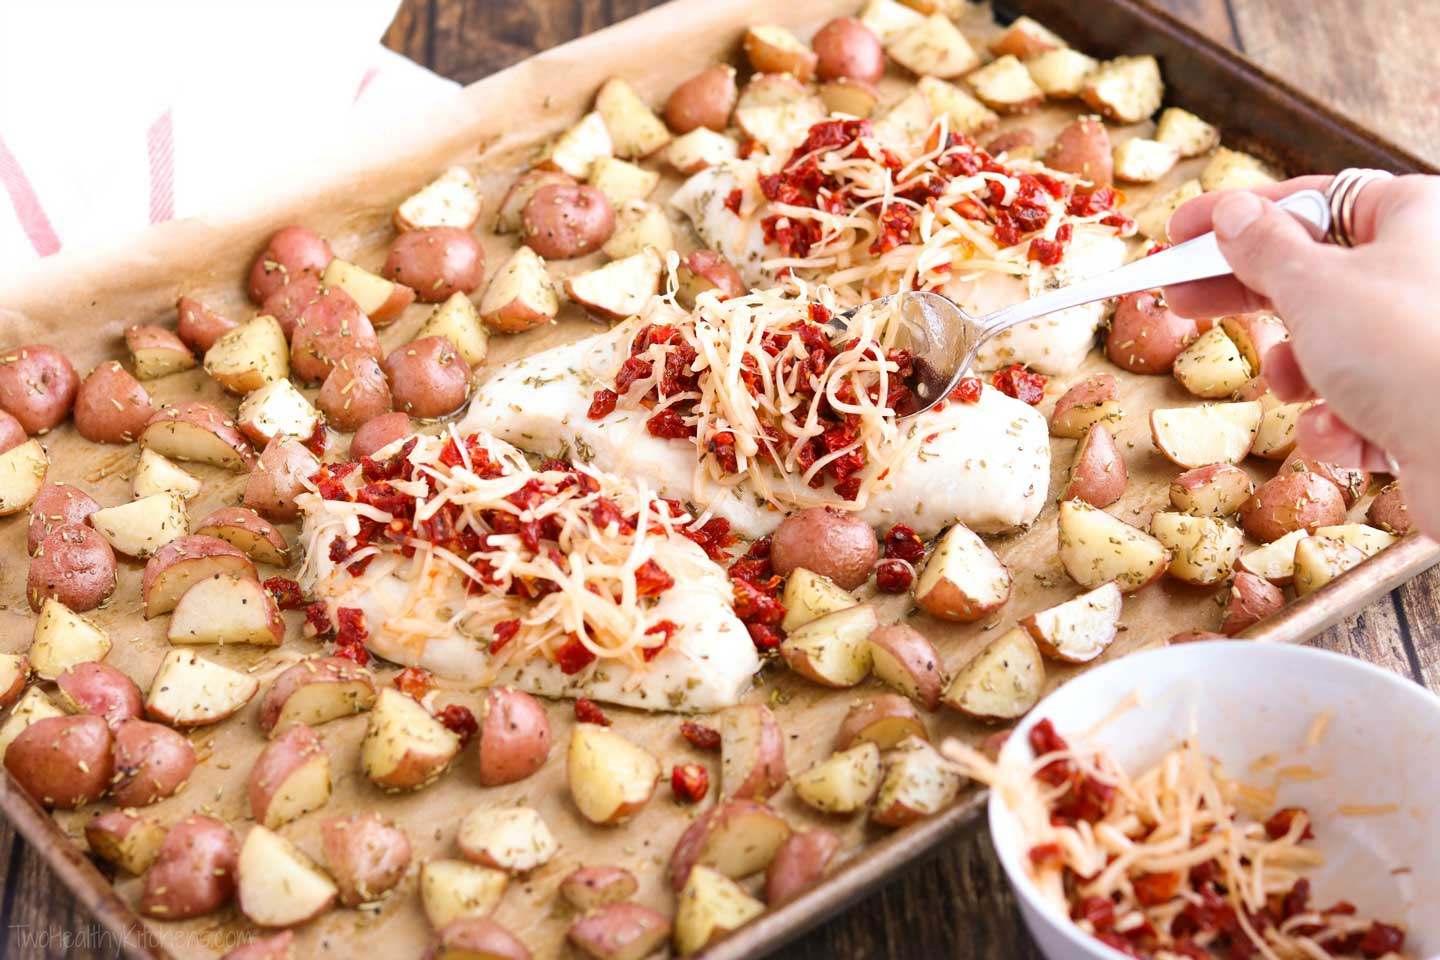 Incredibly delicious, with such easy cleanup! This sheet pan chicken dinner recipe features tender, juicy chicken breasts and perfectly baked redskin potatoes. All accented with rosemary, crowned with a scrumptious topping of sun-dried tomatoes and Italian cheeses, then finished with a honey-balsamic drizzle! This sheet pan supper recipe takes chicken and potatoes to a whole new level! Easy enough for weeknight dinners (make-ahead tips!), special enough for company! | www.TwoHealthyKitchens.com